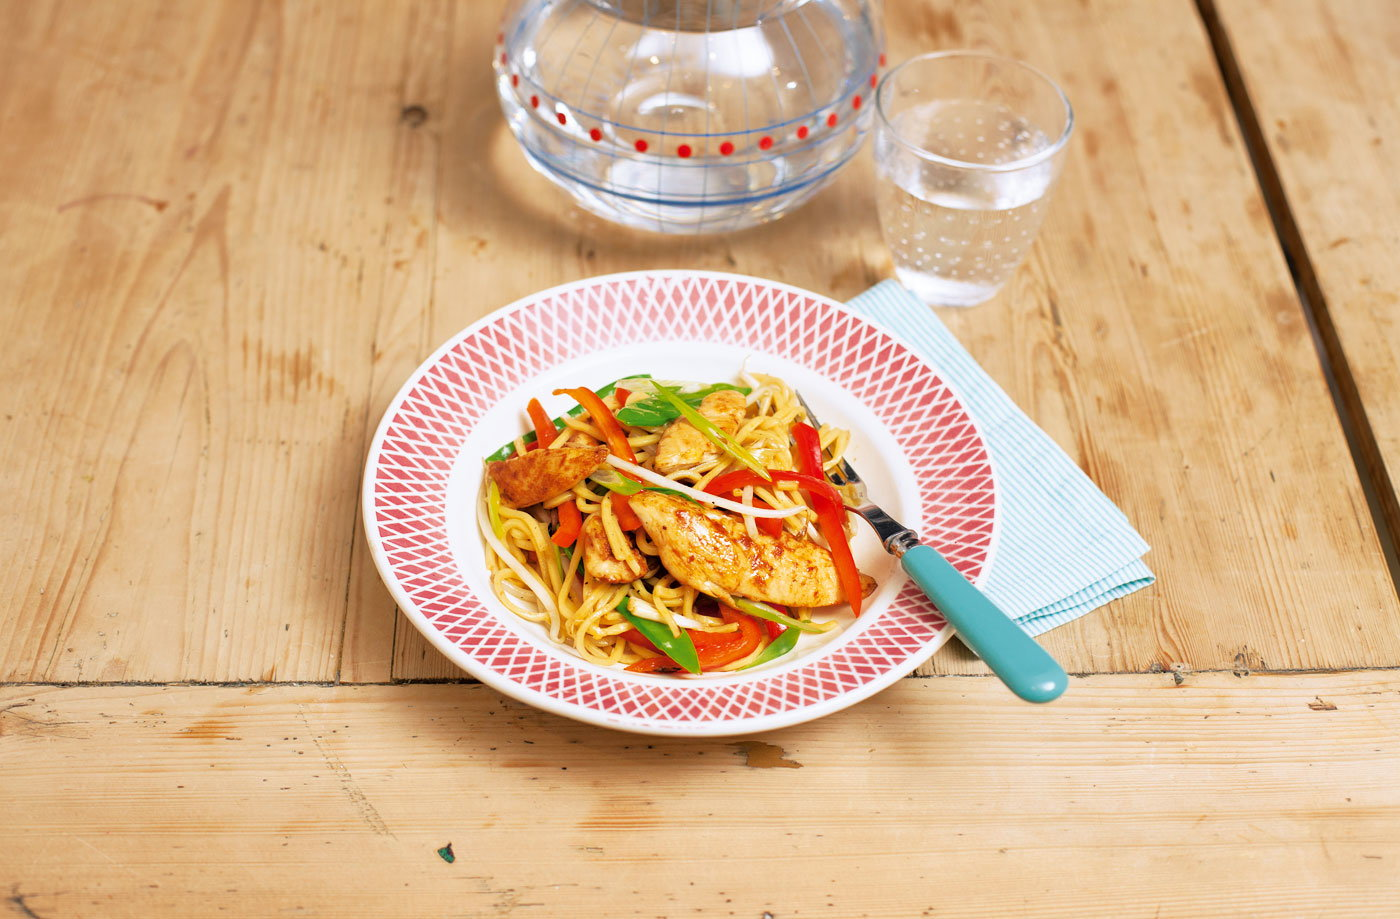 Stir-fried chicken noodles with vegetables recipe